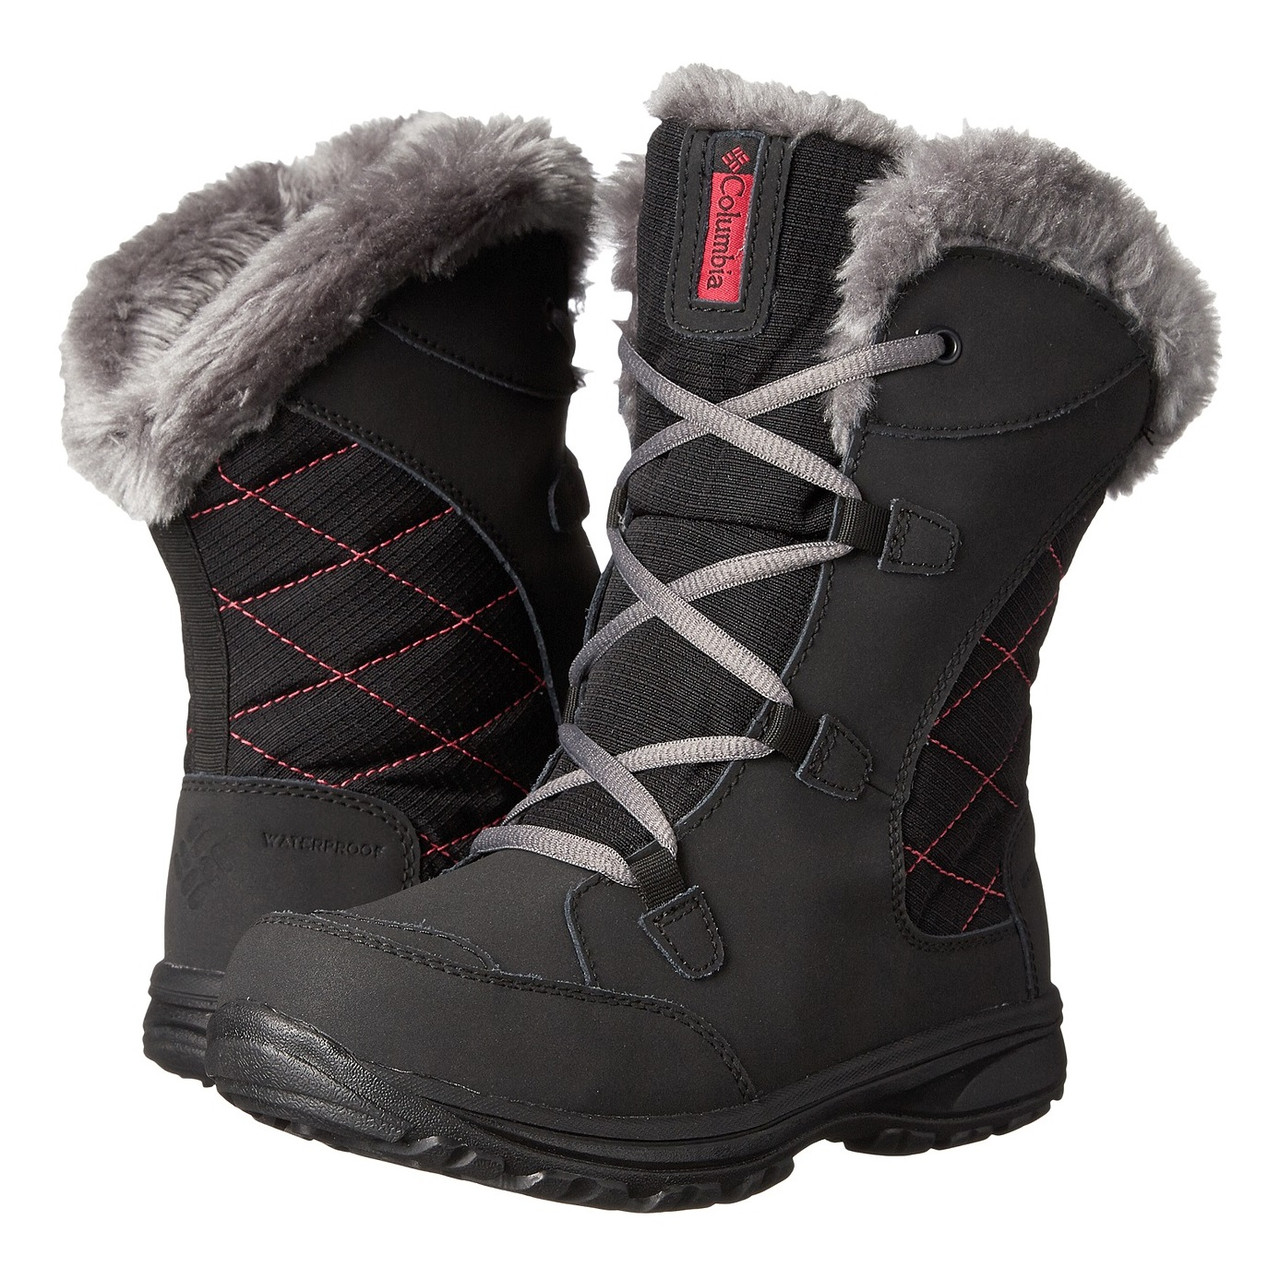 Сапоги зимние женские Columbia Youth Ice Maiden Lace Winter Boot